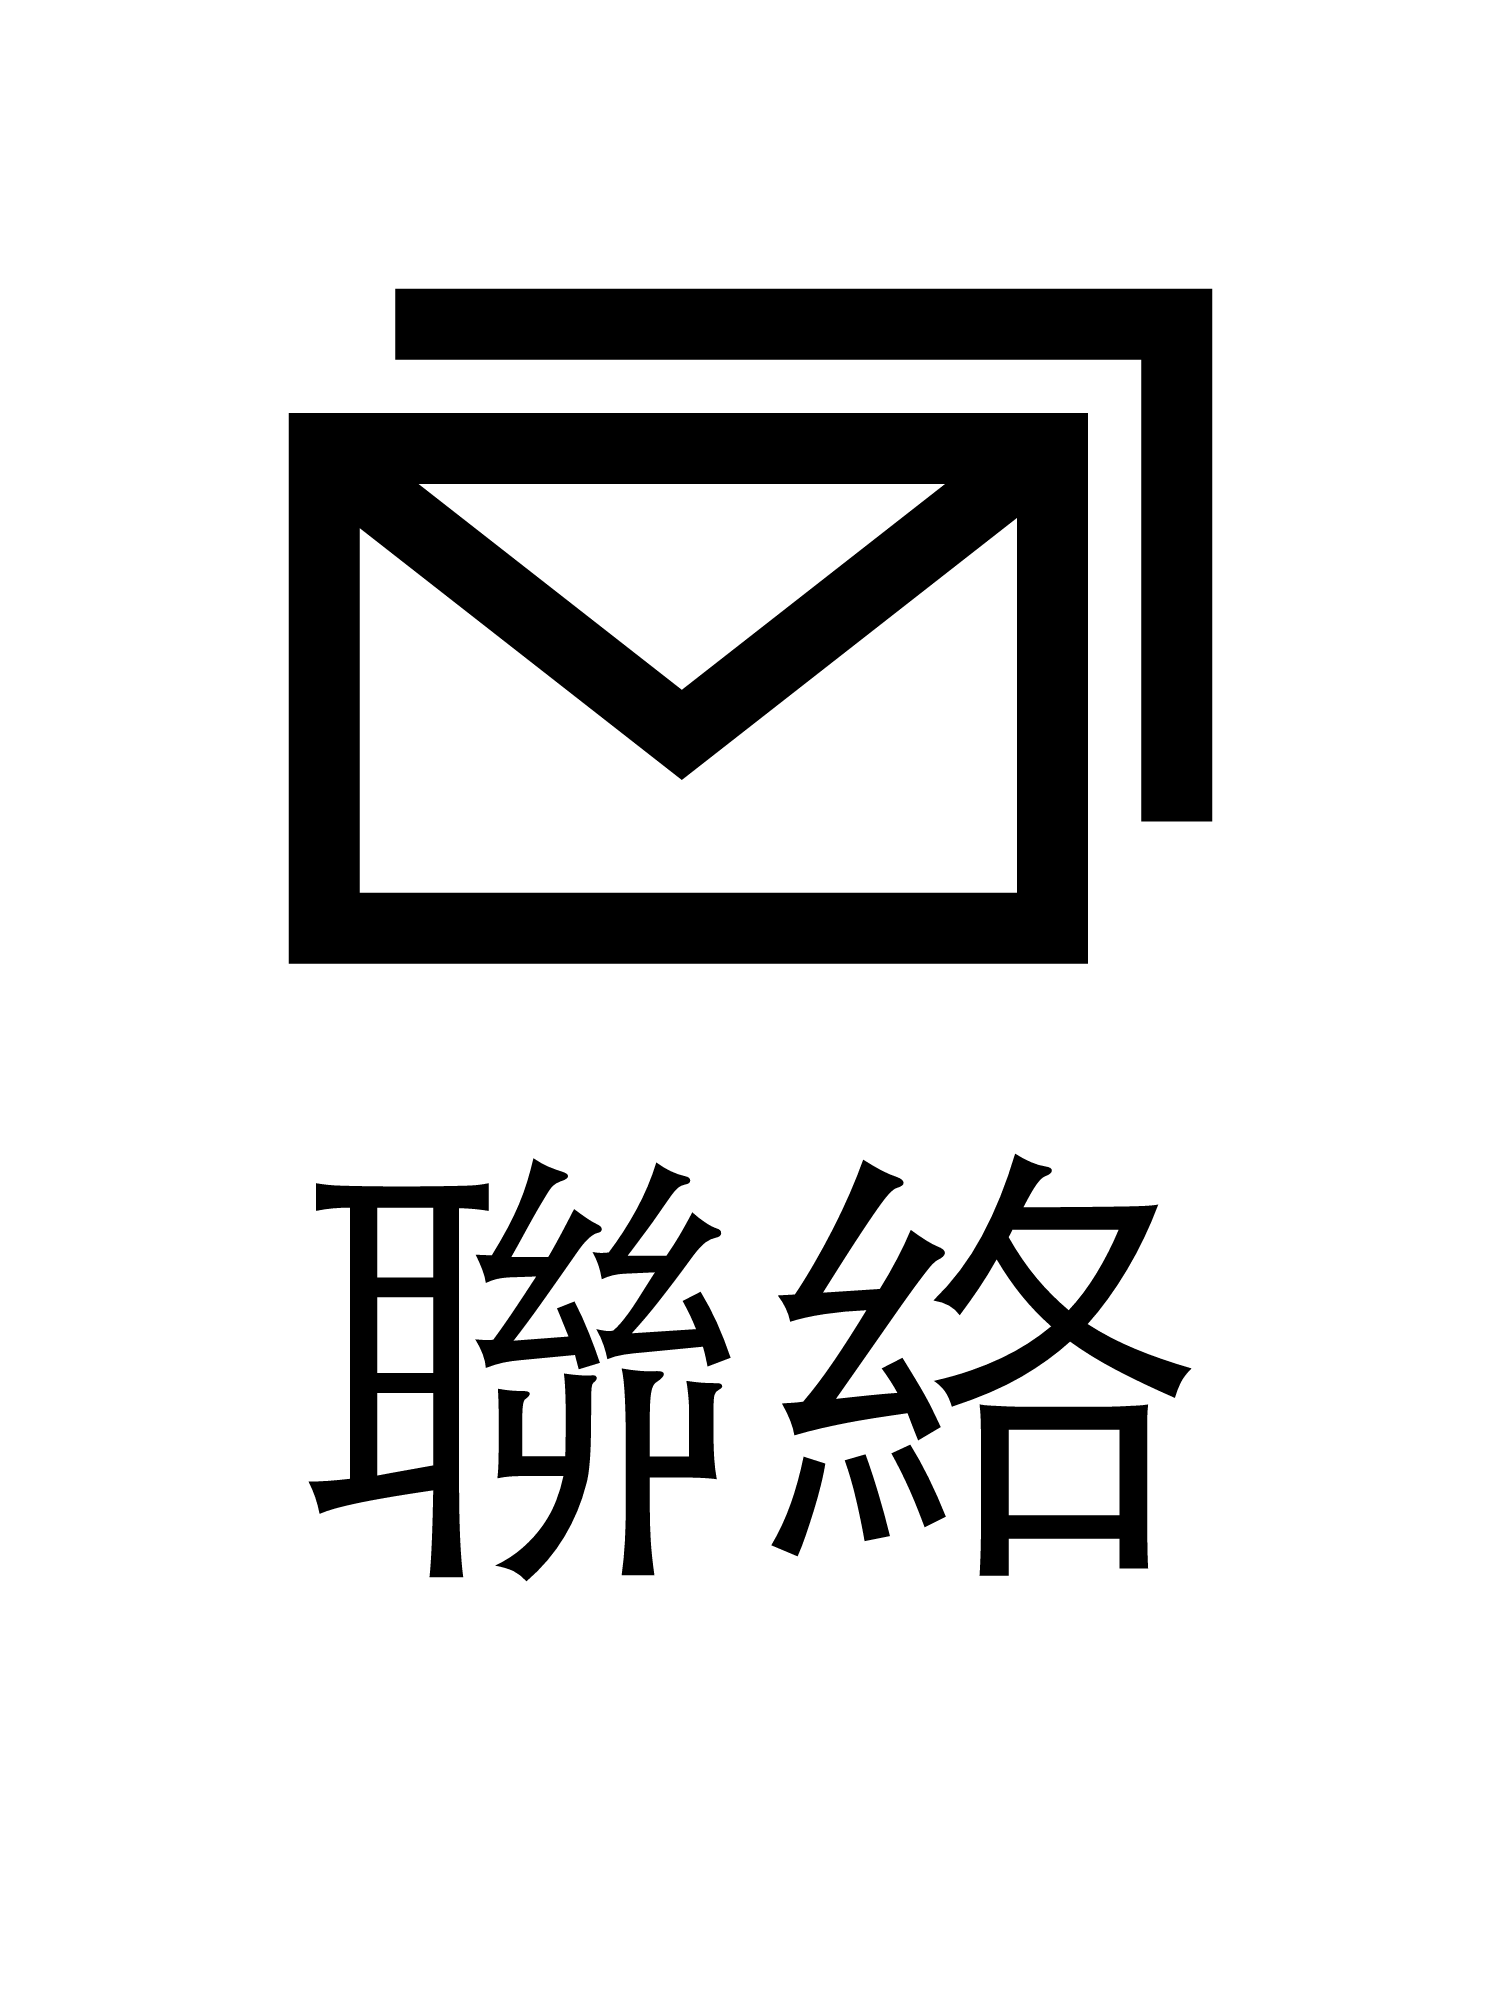 Contact-logo-black.png